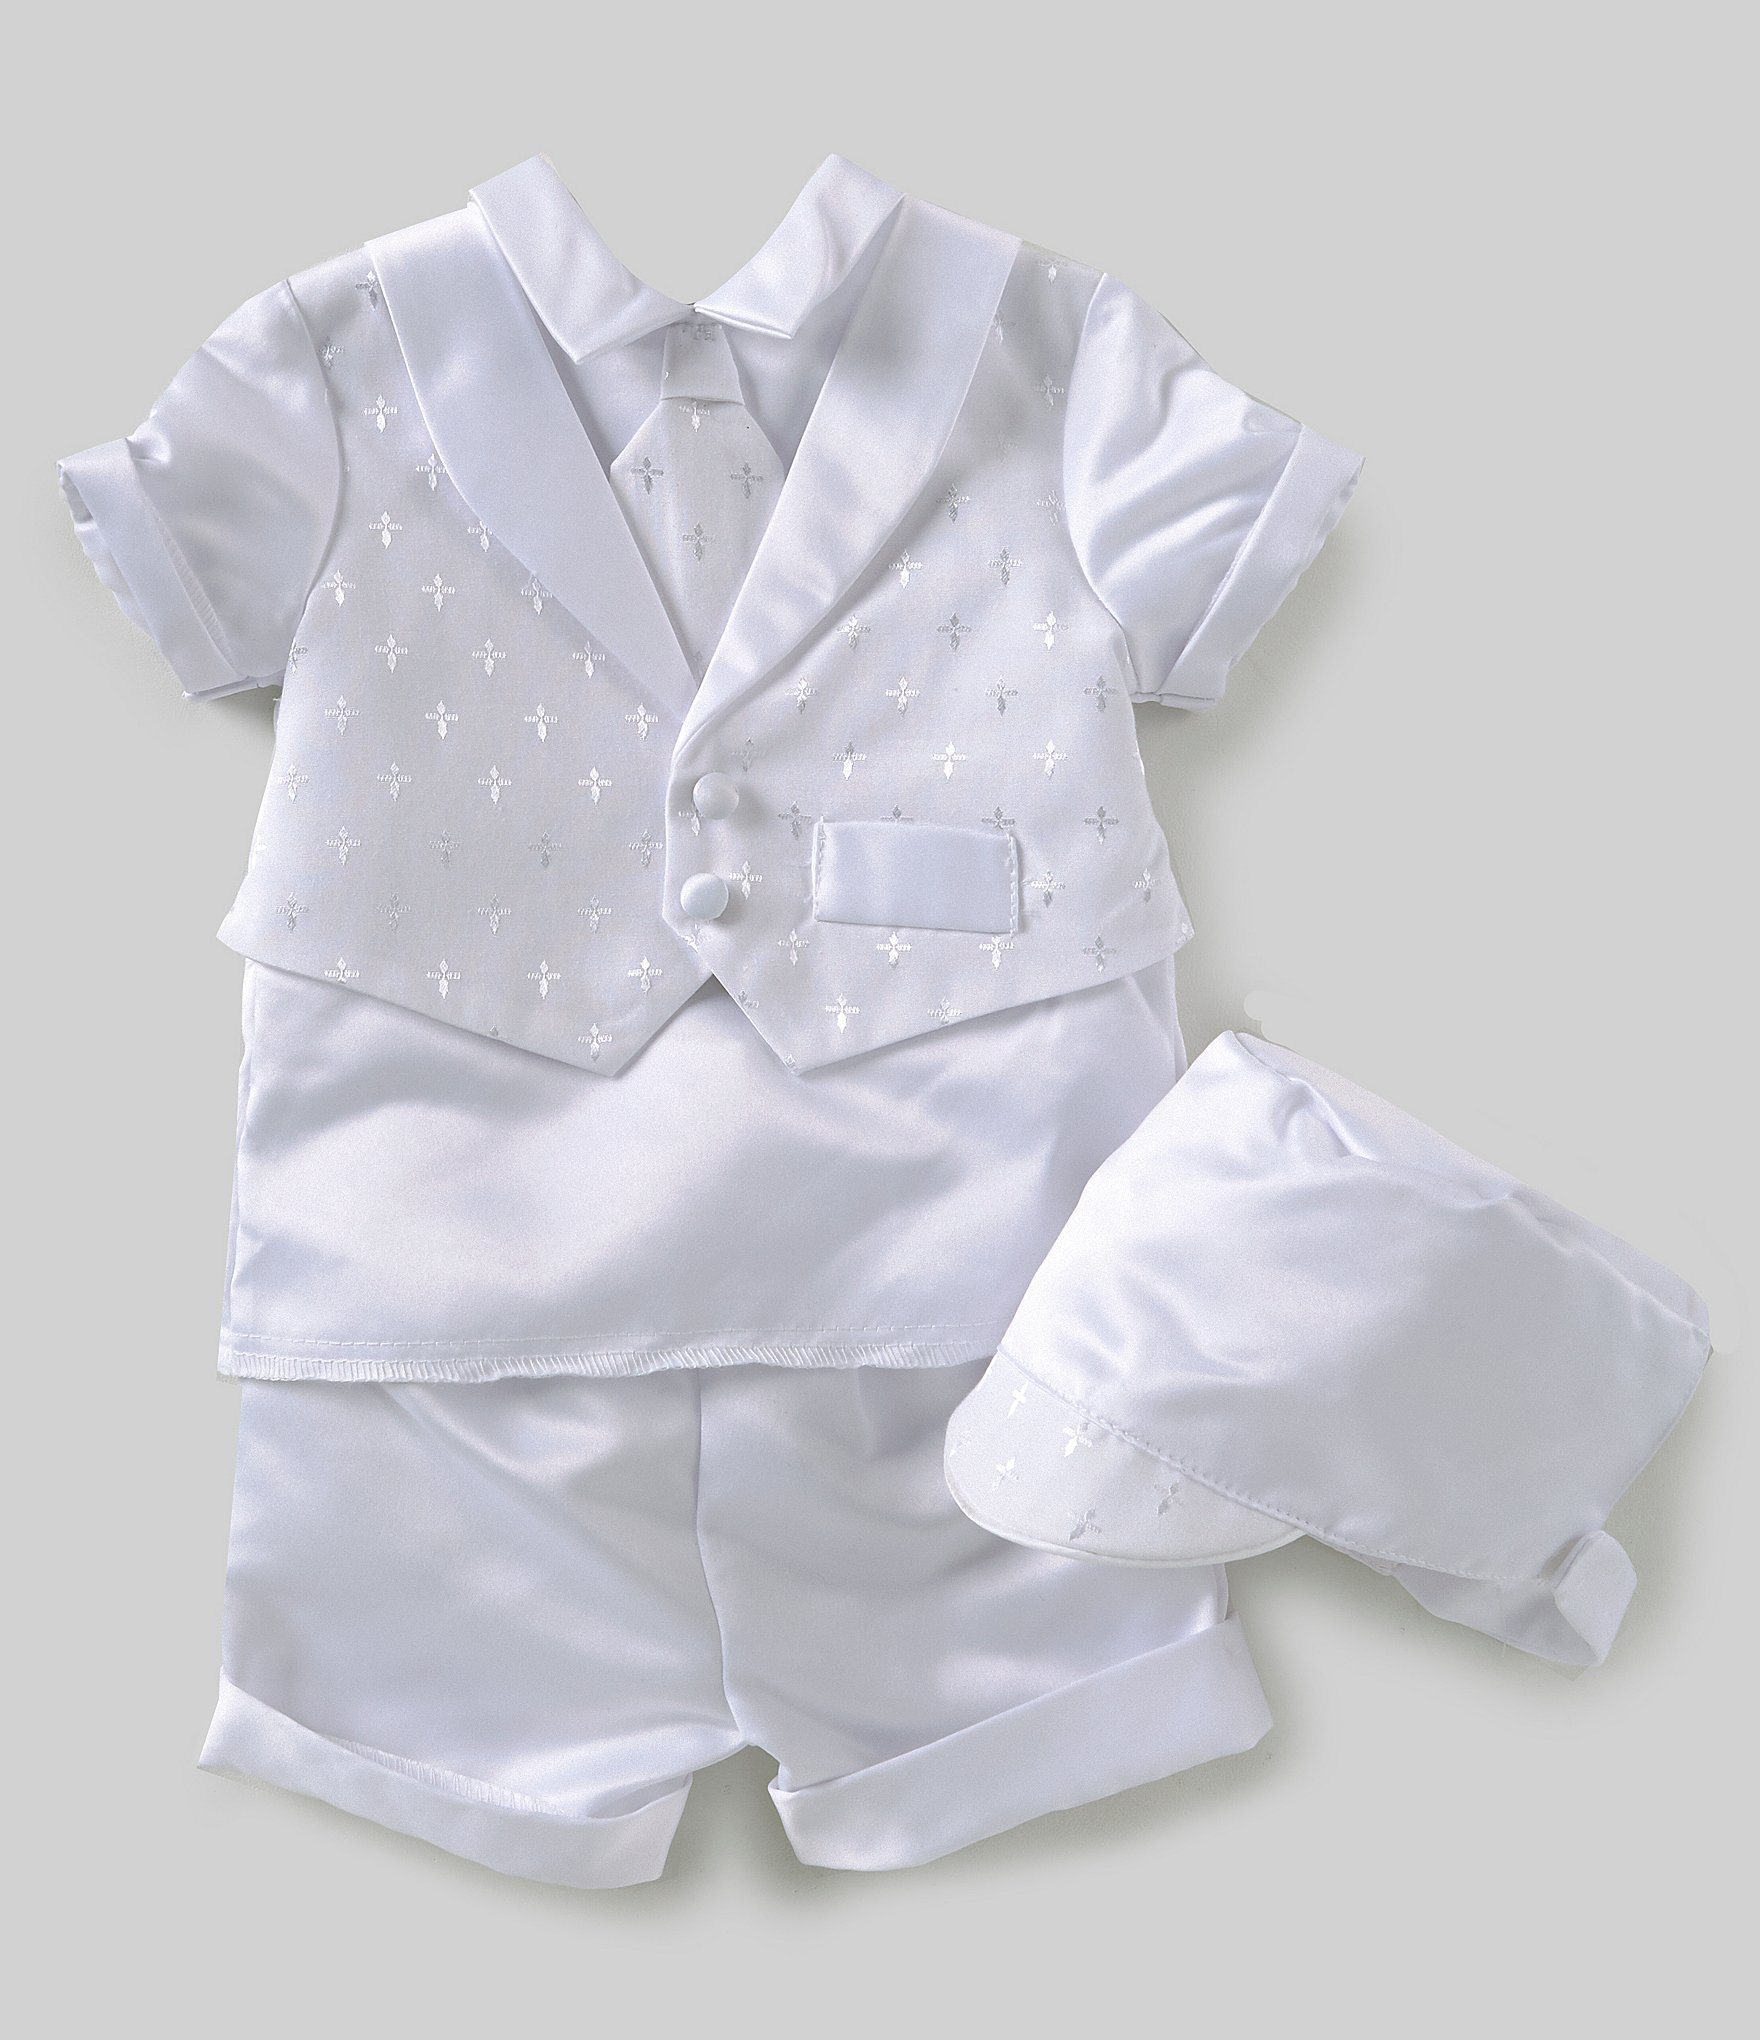 4902c80be Baby Boy Outfits & Clothing Sets | Dillard's